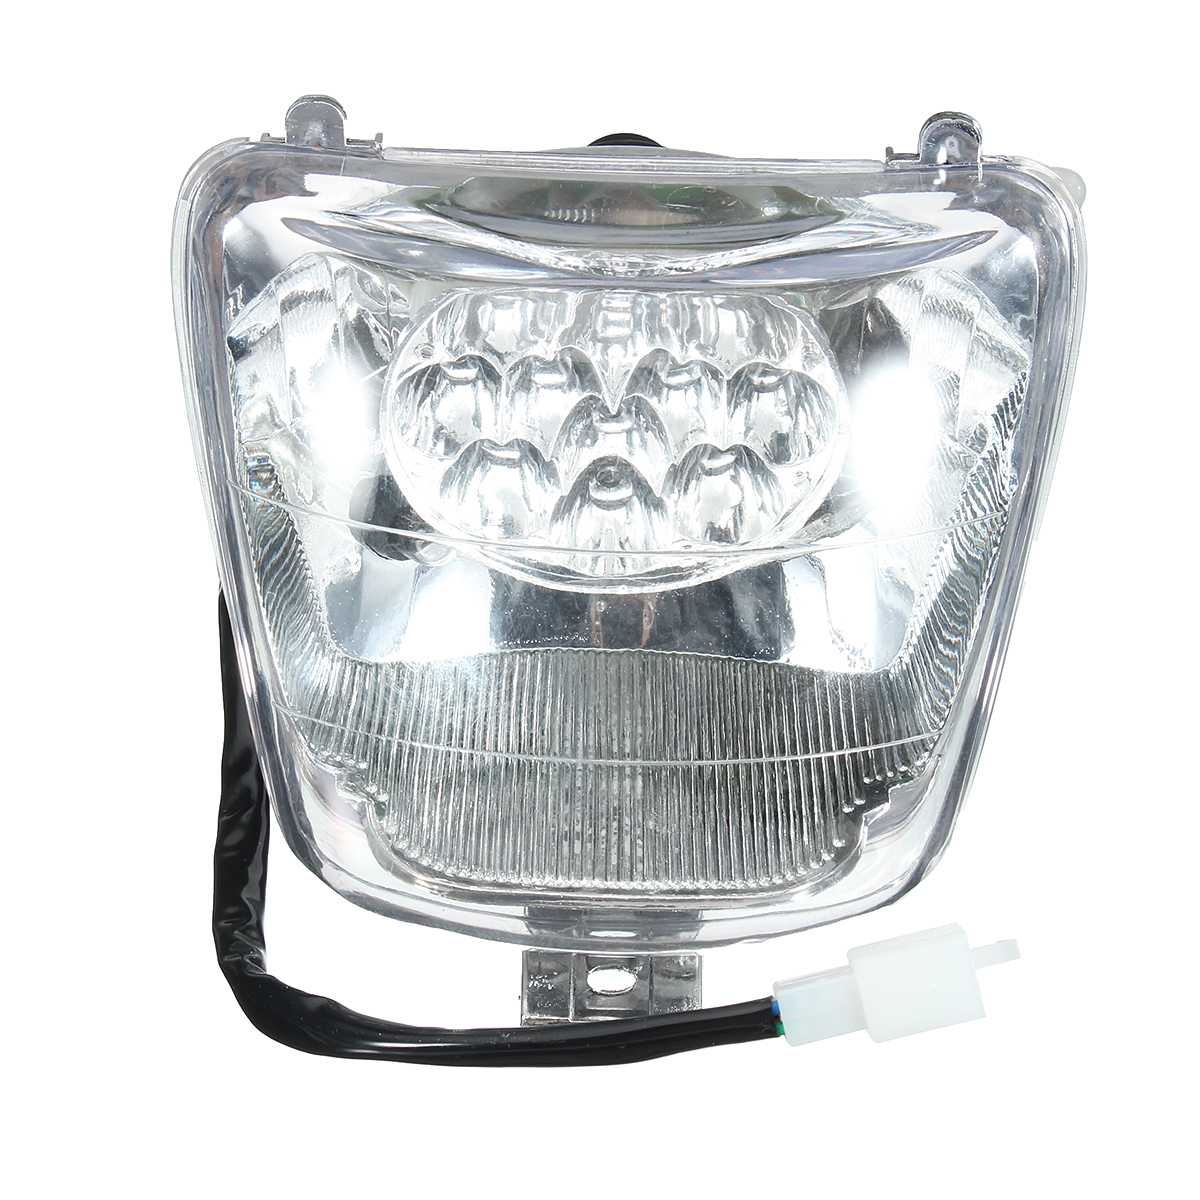 12V 35W Motorcycle Front Light LED Headlight For 50cc 70cc 90cc 110cc 125cc For Mini ATV Quad Bike For Buggy